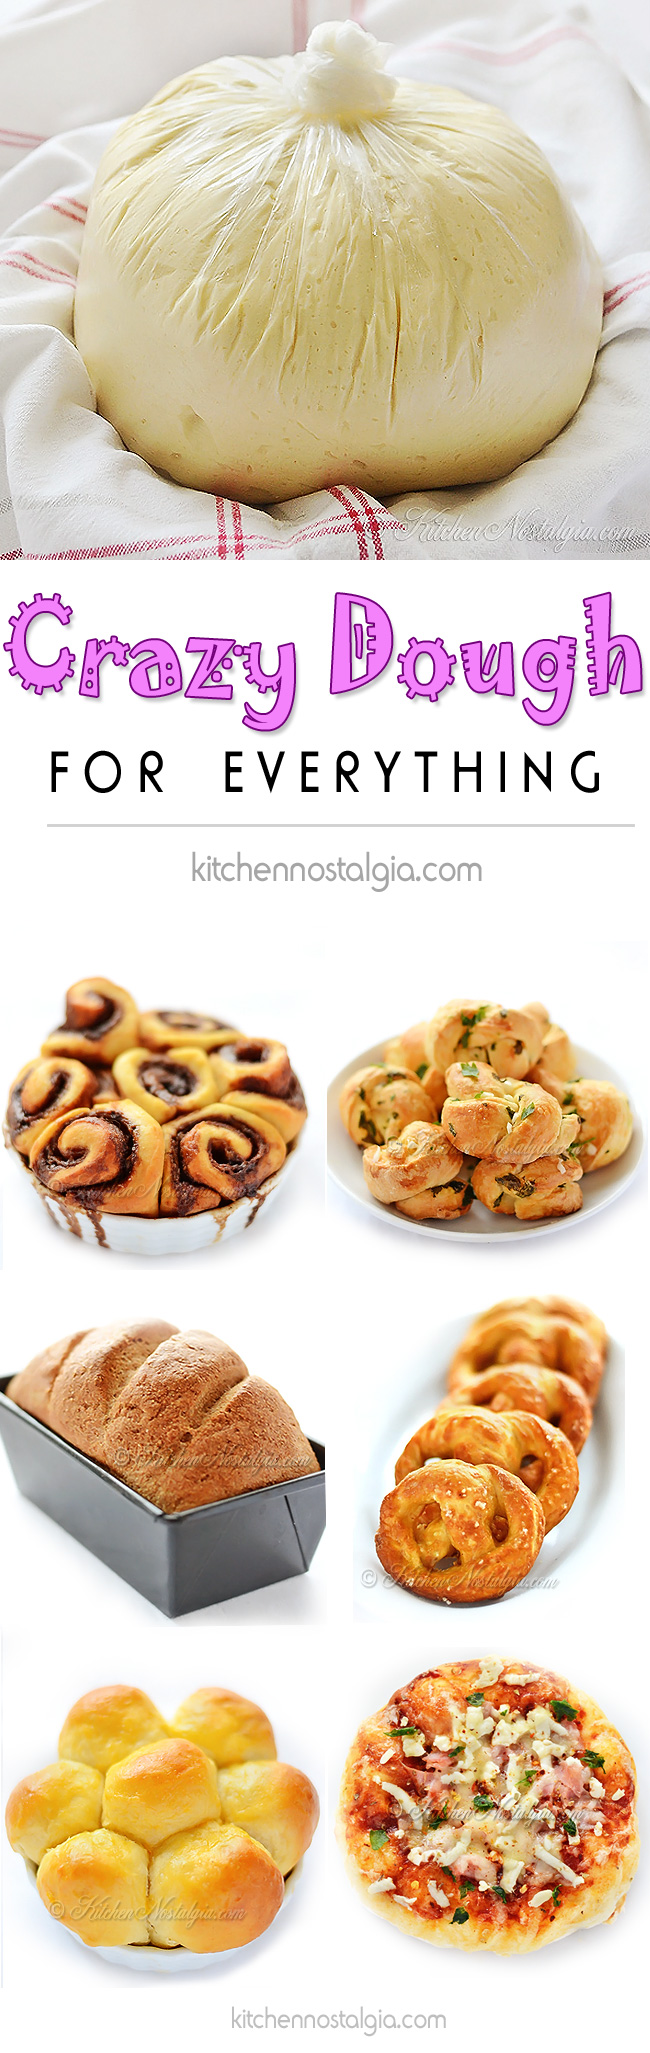 Crazy Dough for Everything - by kitchennostalgia.com